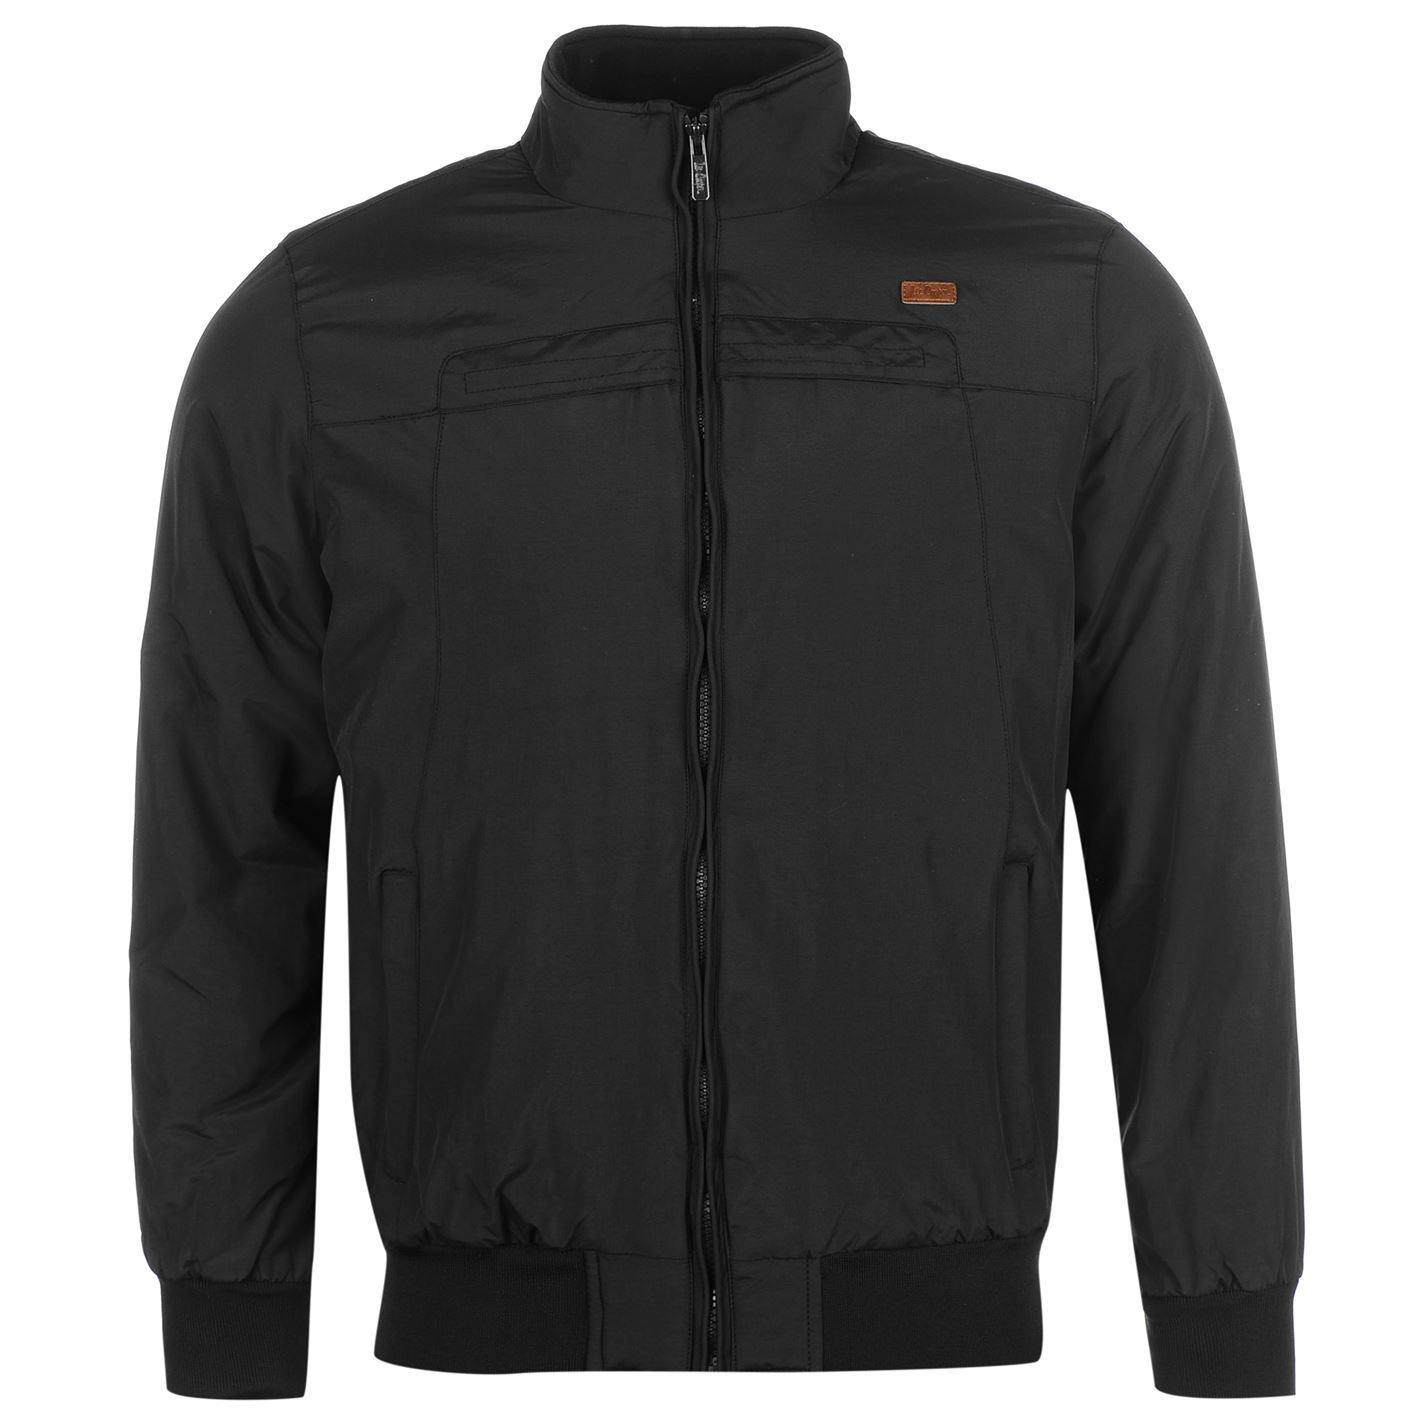 Find great deals on eBay for padded bomber jacket. Shop with confidence.